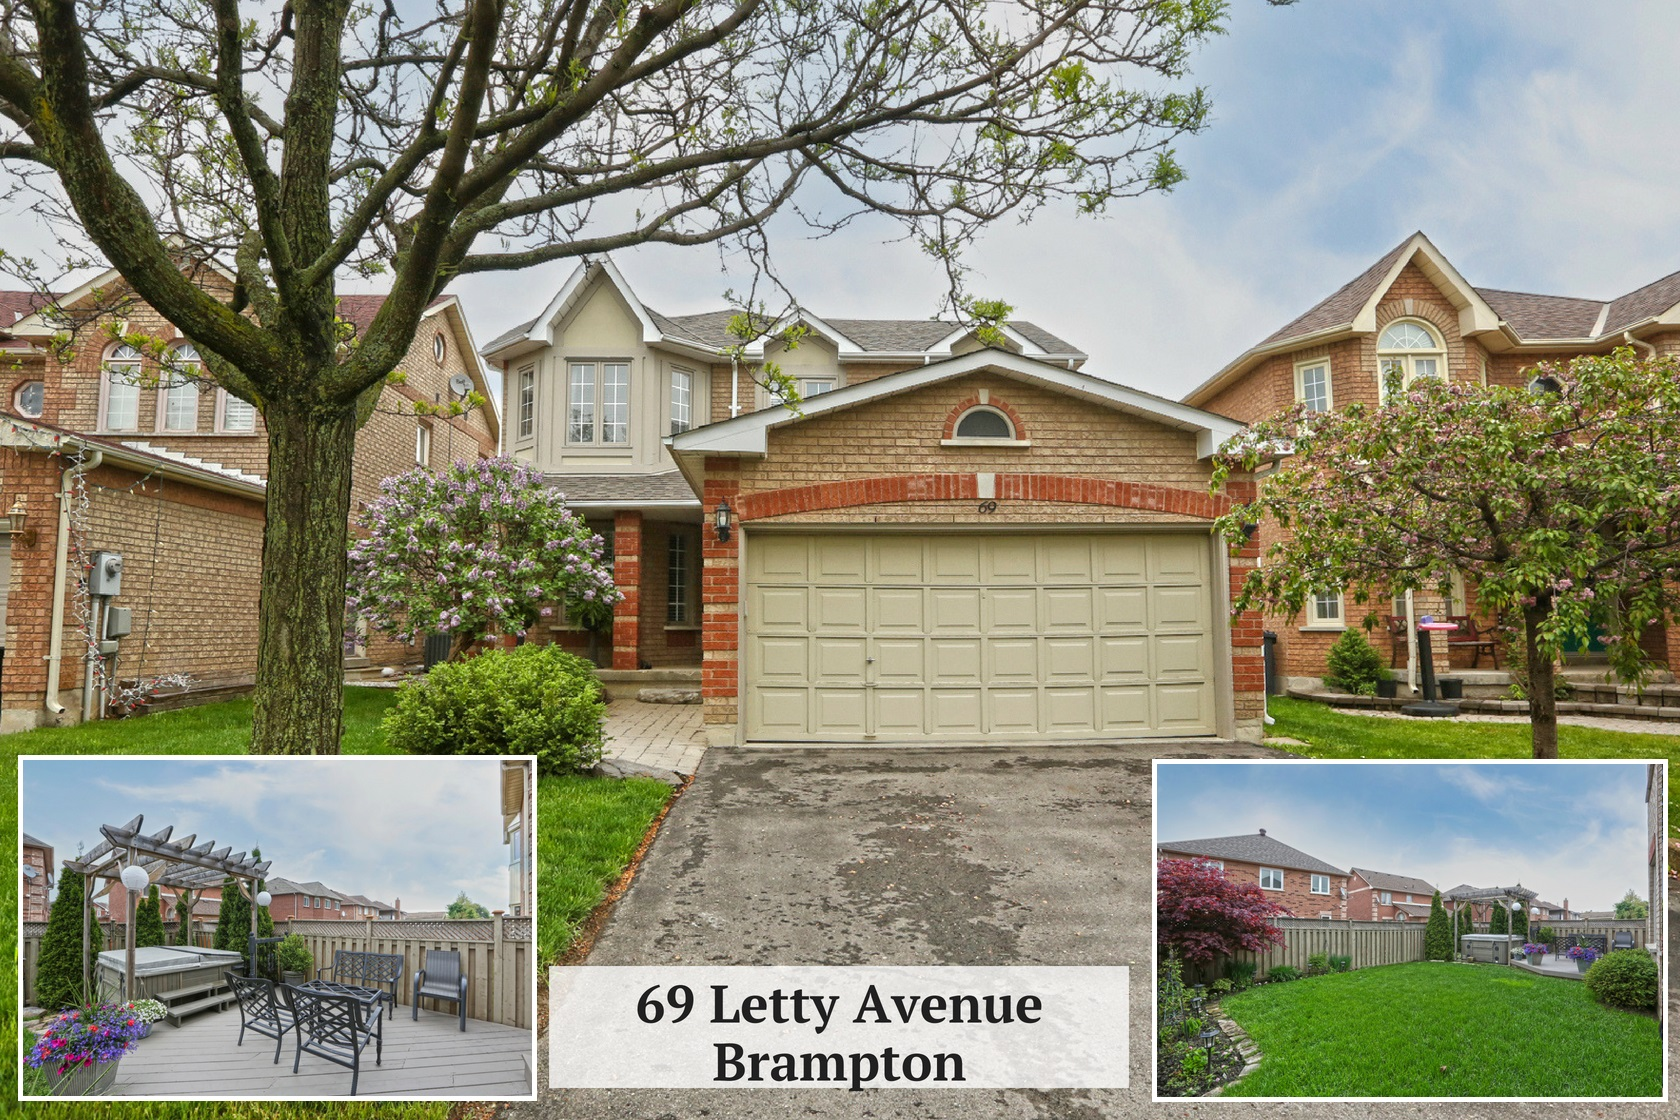 $745,000 • 69 Letty Ave